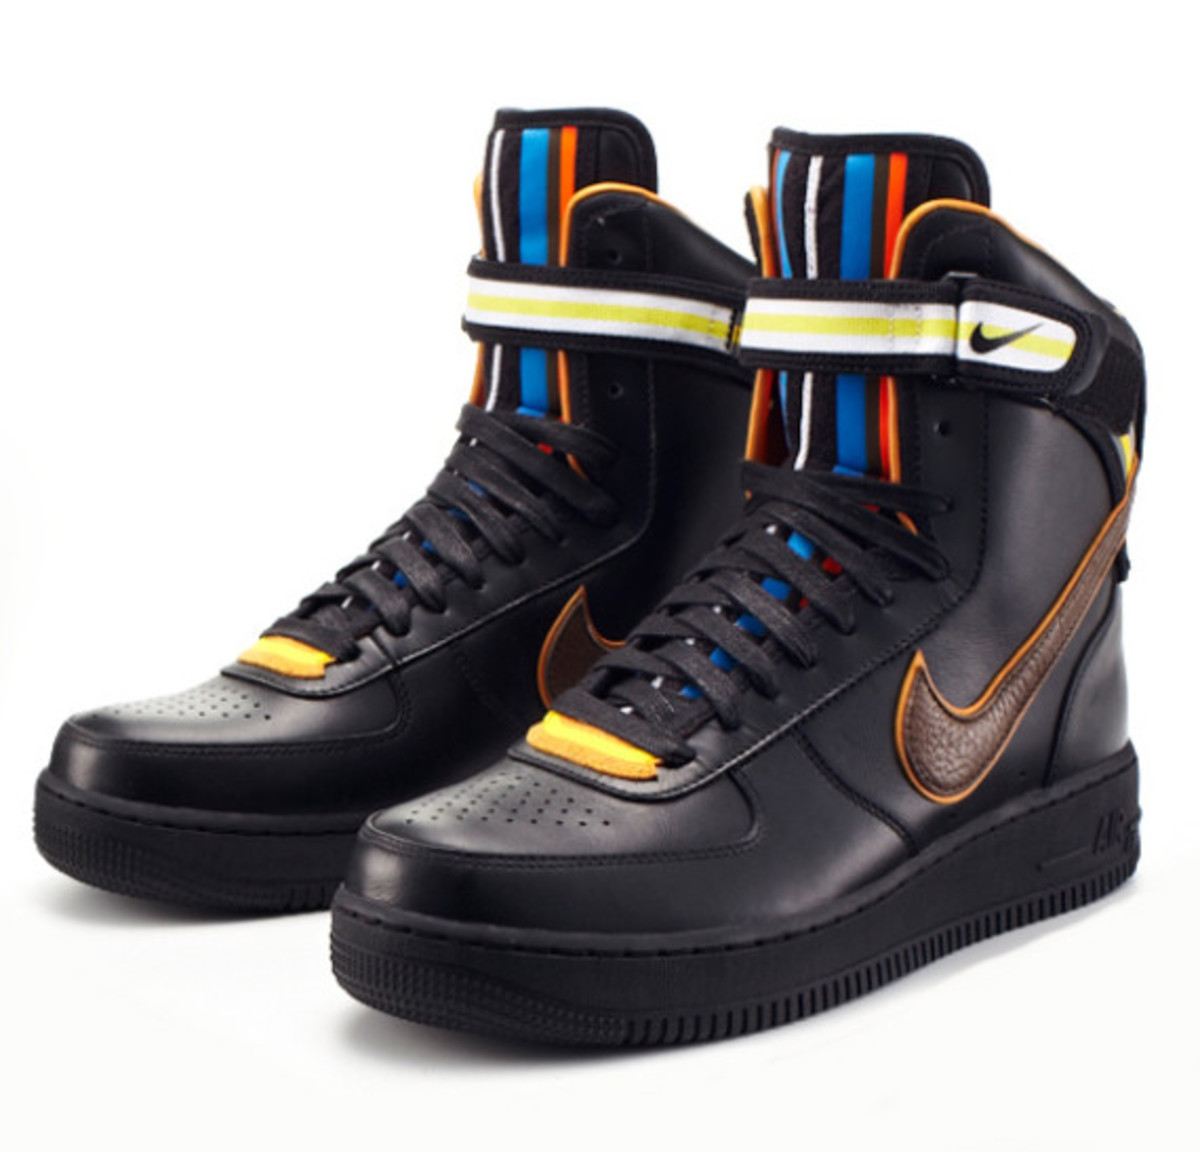 riccardo-tisci-nike-air-force-1-black-collection-05